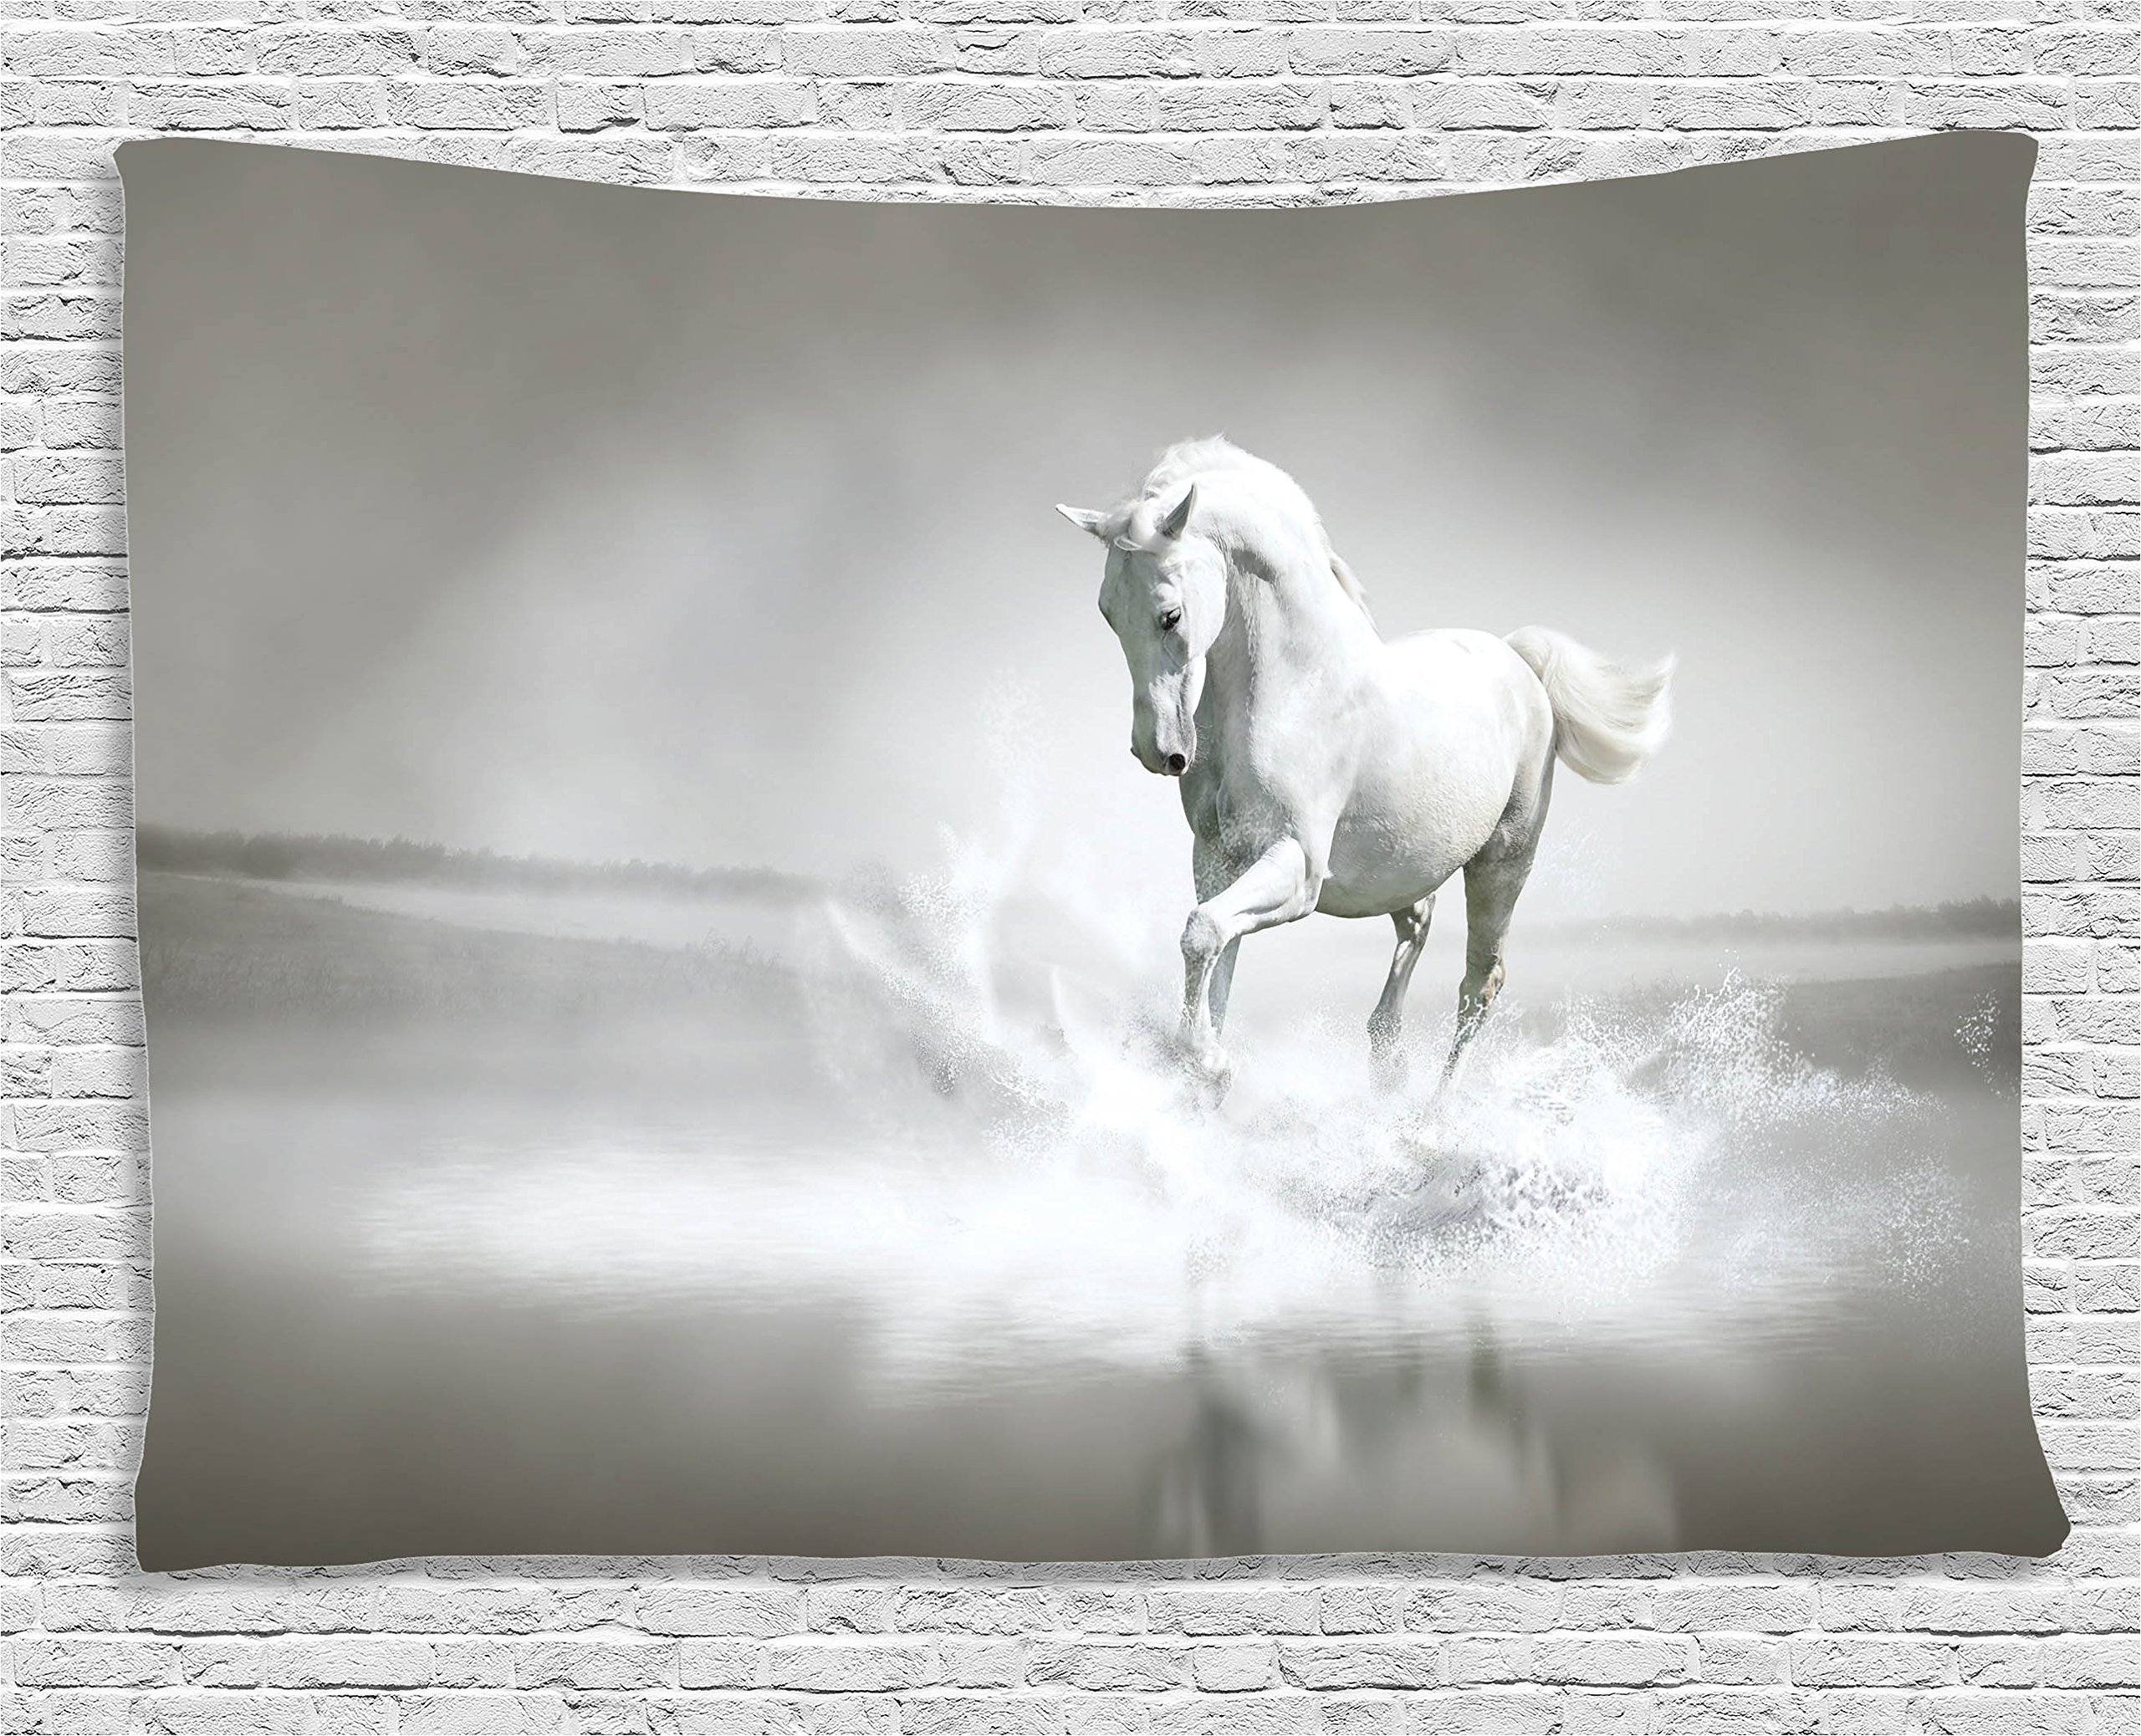 Ambesonne Animal Decor Tapestry, Horse Running Through Water Dramatic Symbol for The Motivation of Life Wild Artwork, Wall Hanging for Bedroom Living Room Dorm, 60 W X 40 L inches, Sage Green